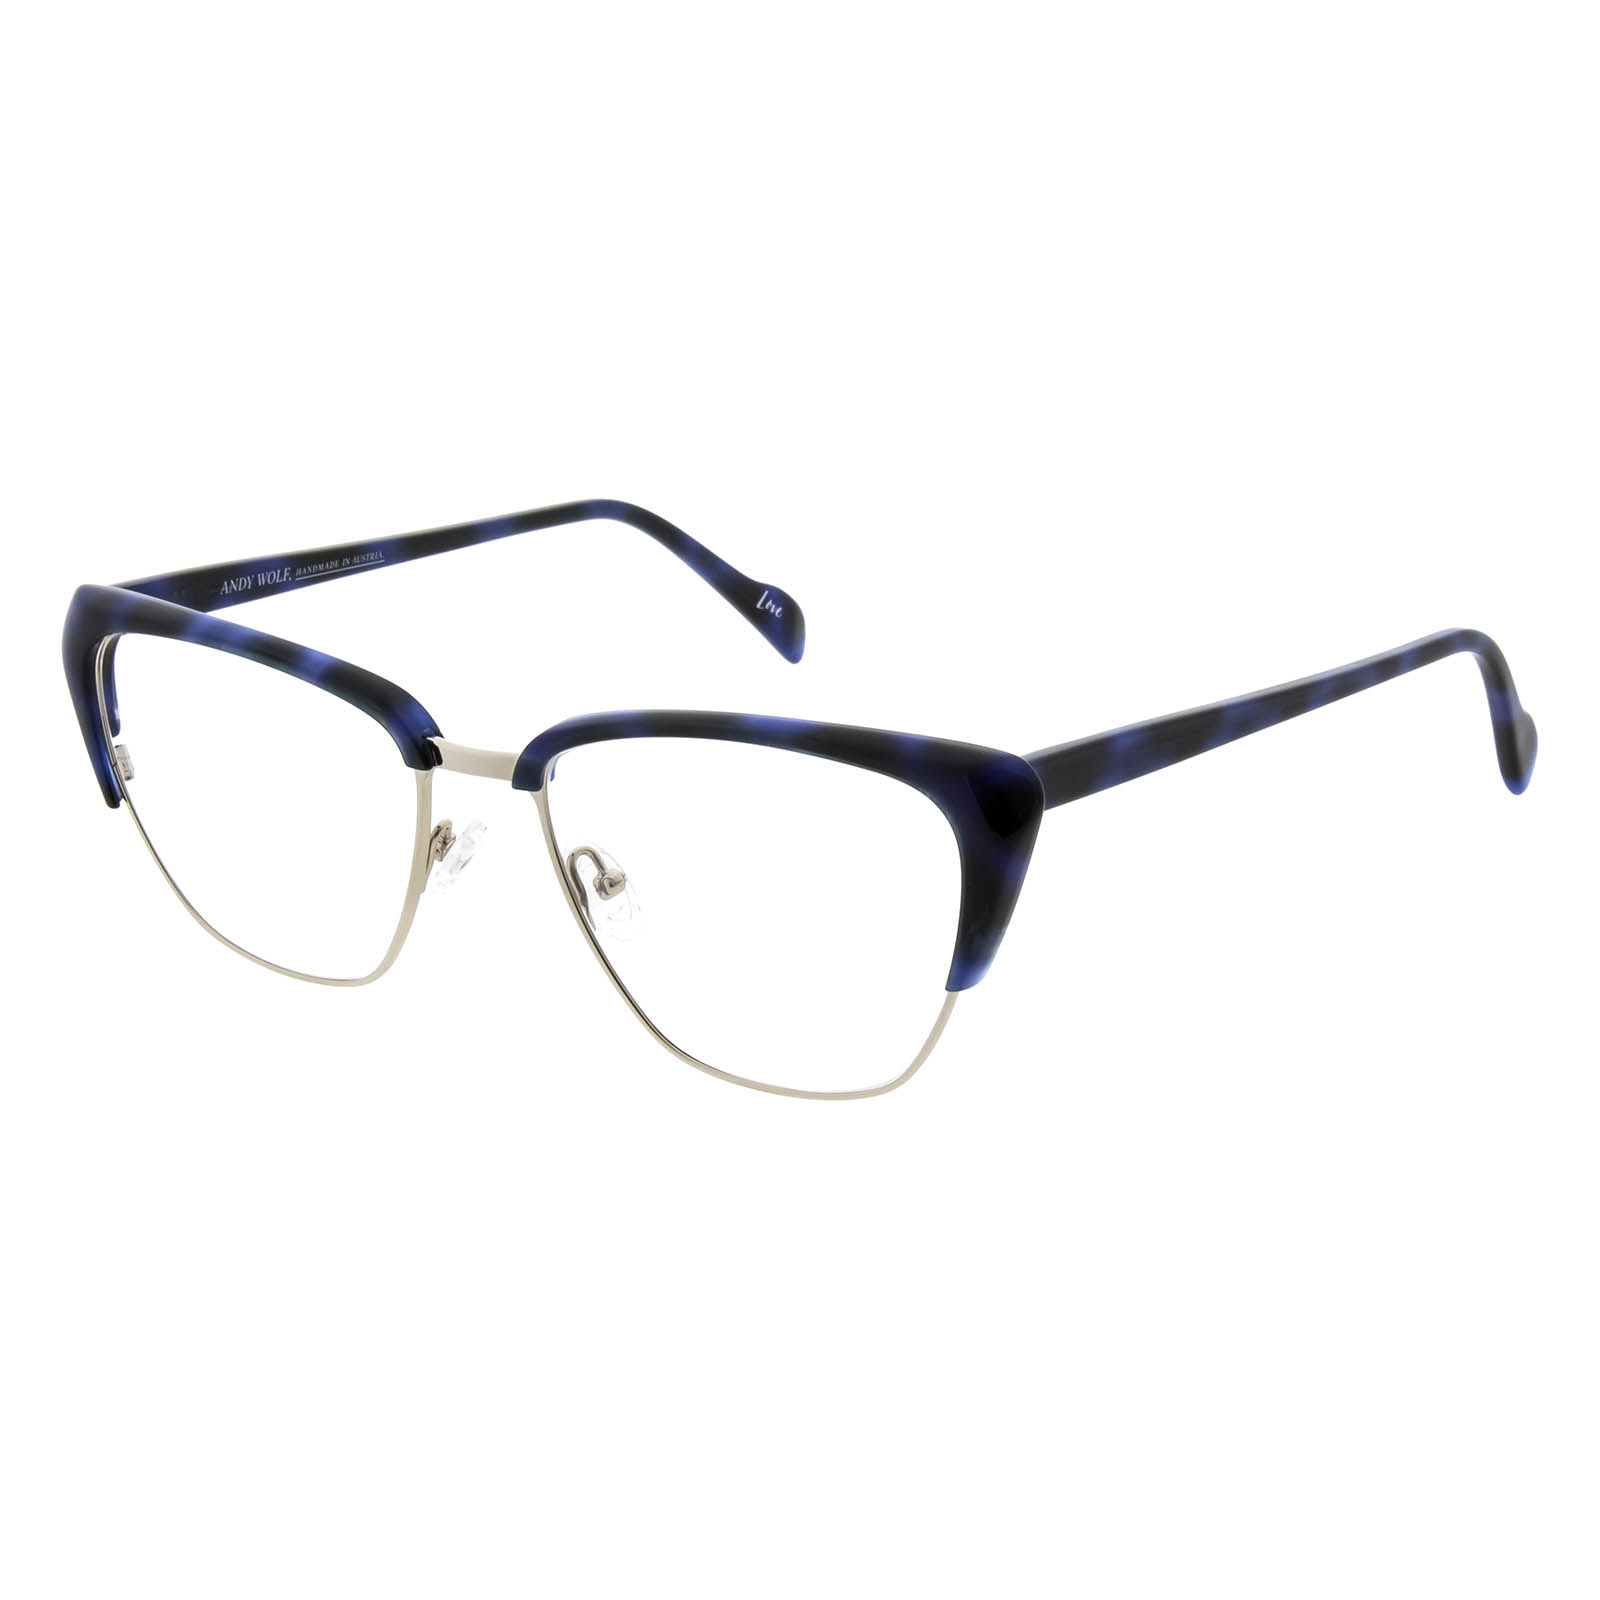 ANDY WOLF EYEWEAR_5102_C_side